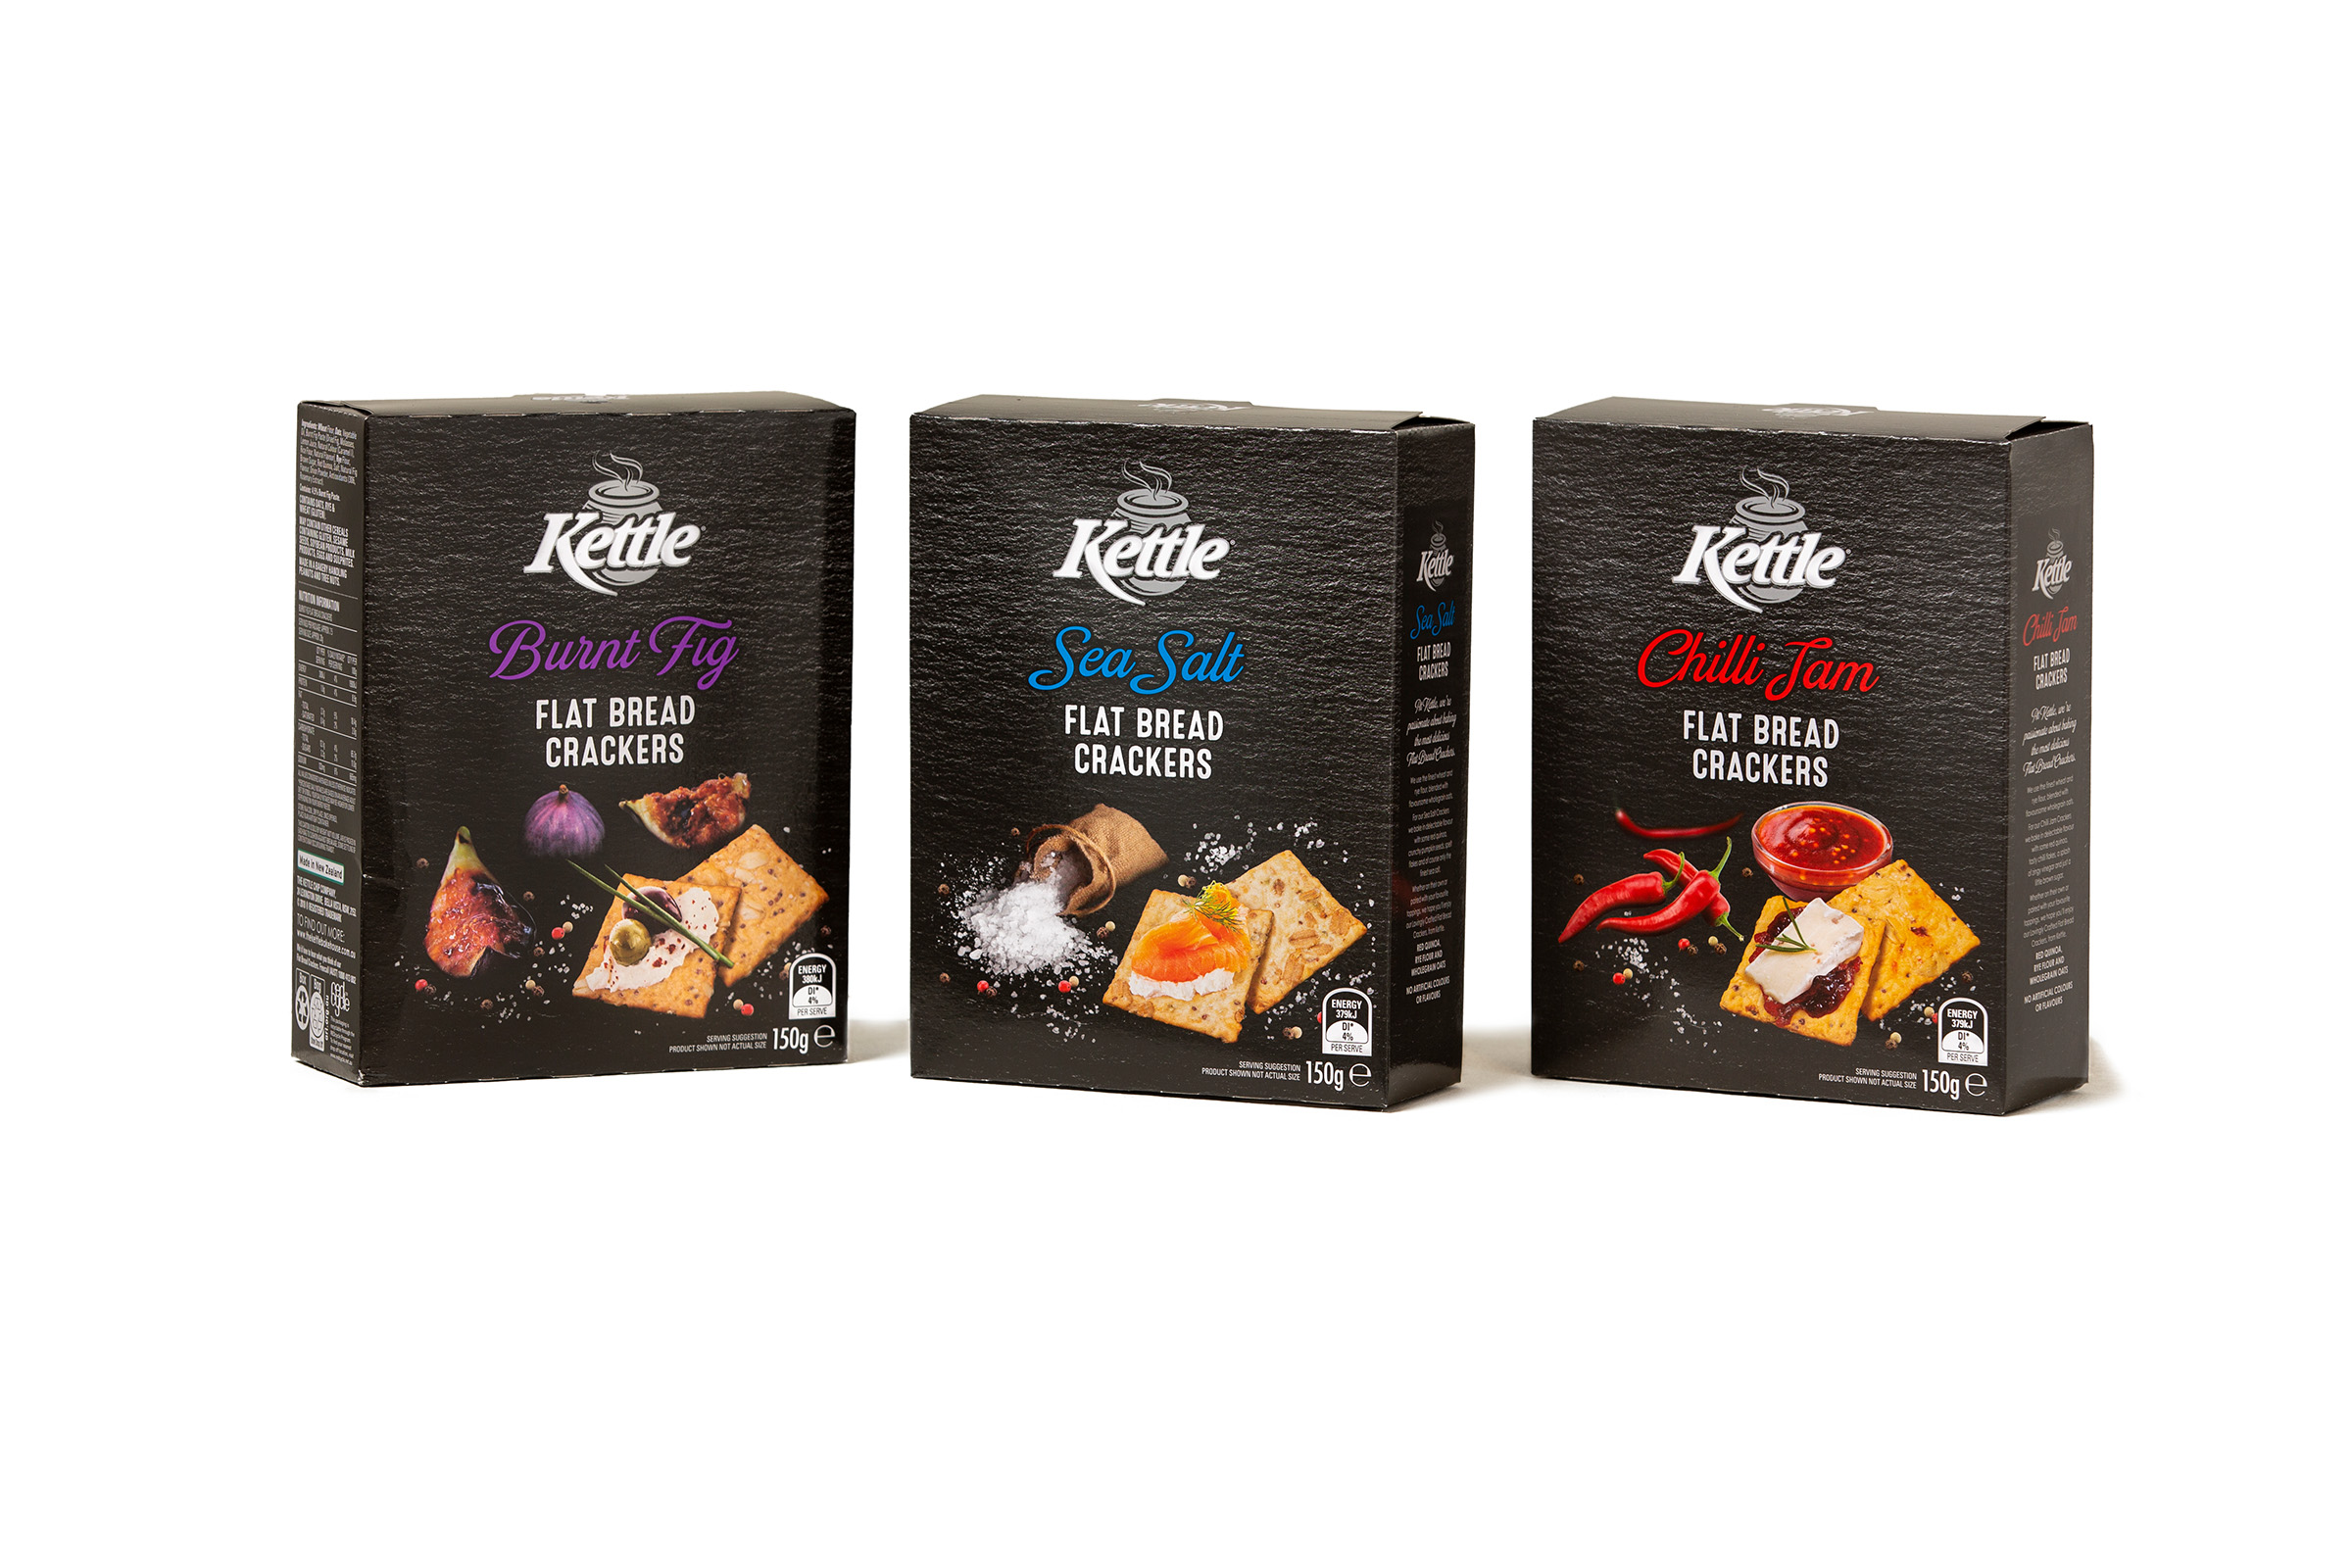 Advertising studio product photography of Kettle Crackers Range on a white background